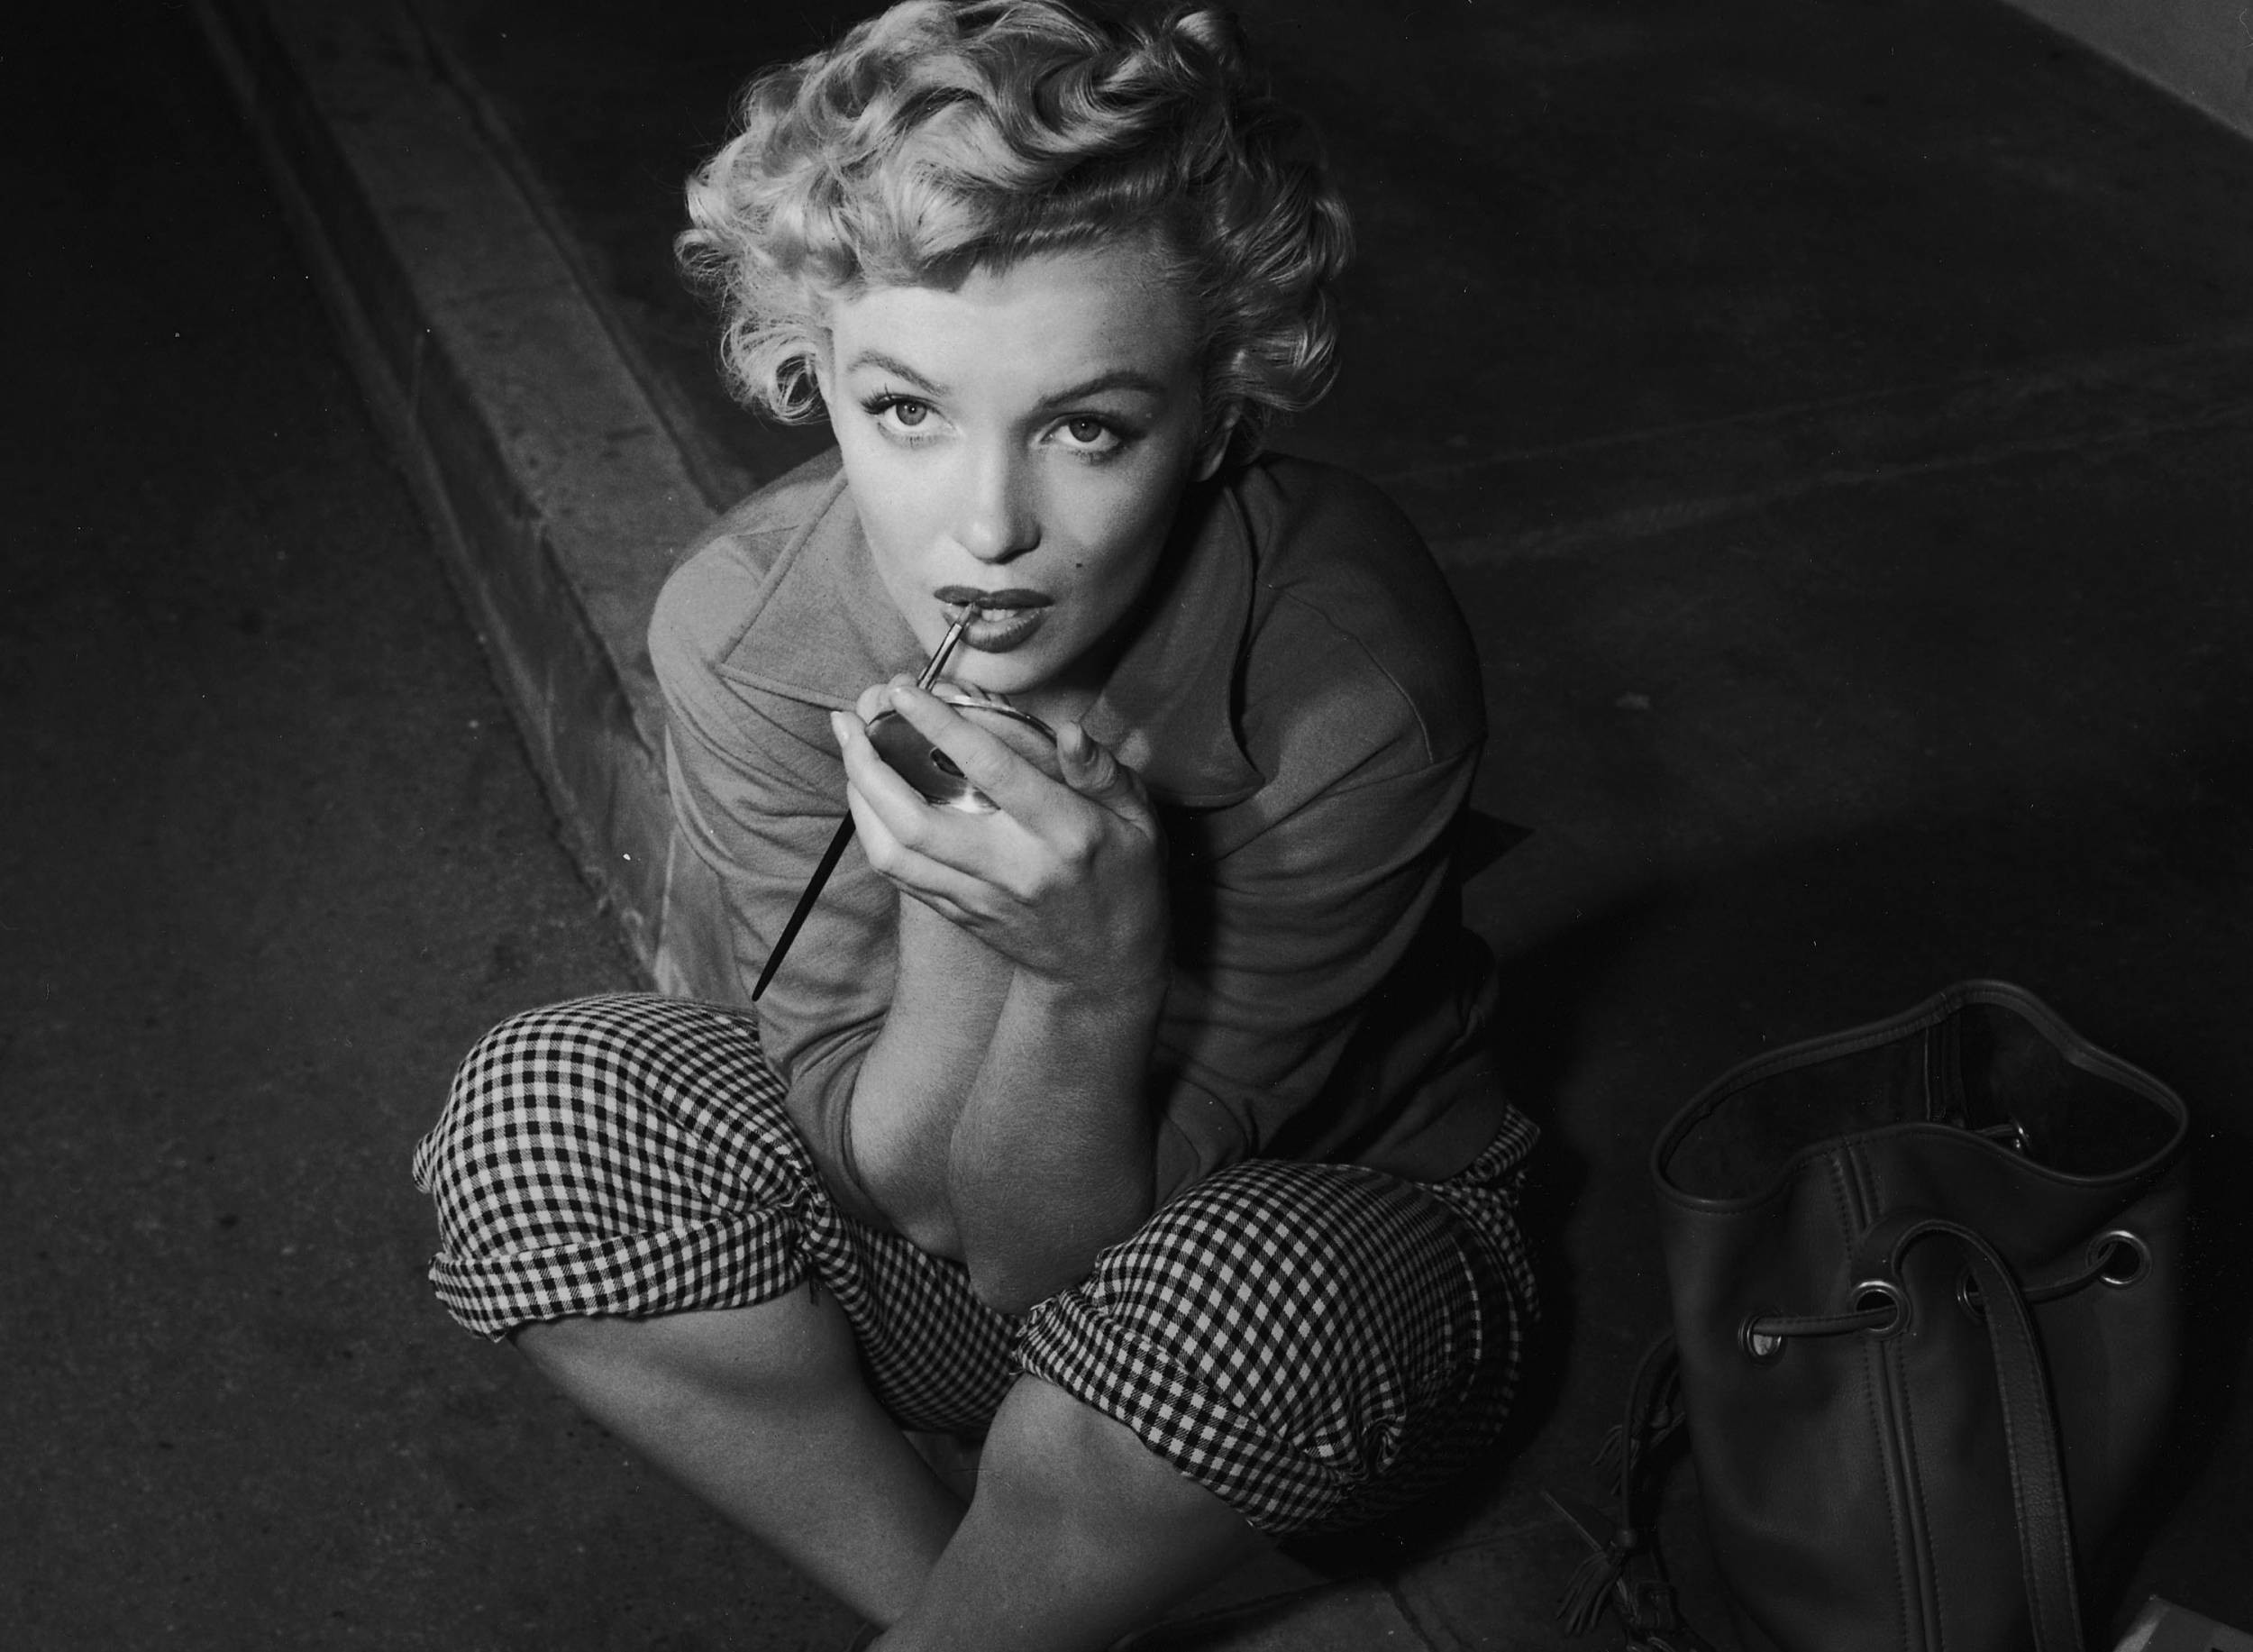 Res: 2500x1833, Free Download Marilyn Monroe Wallpapers, .WM417 for PC & Mac, Tablet,  Laptop, Mobile